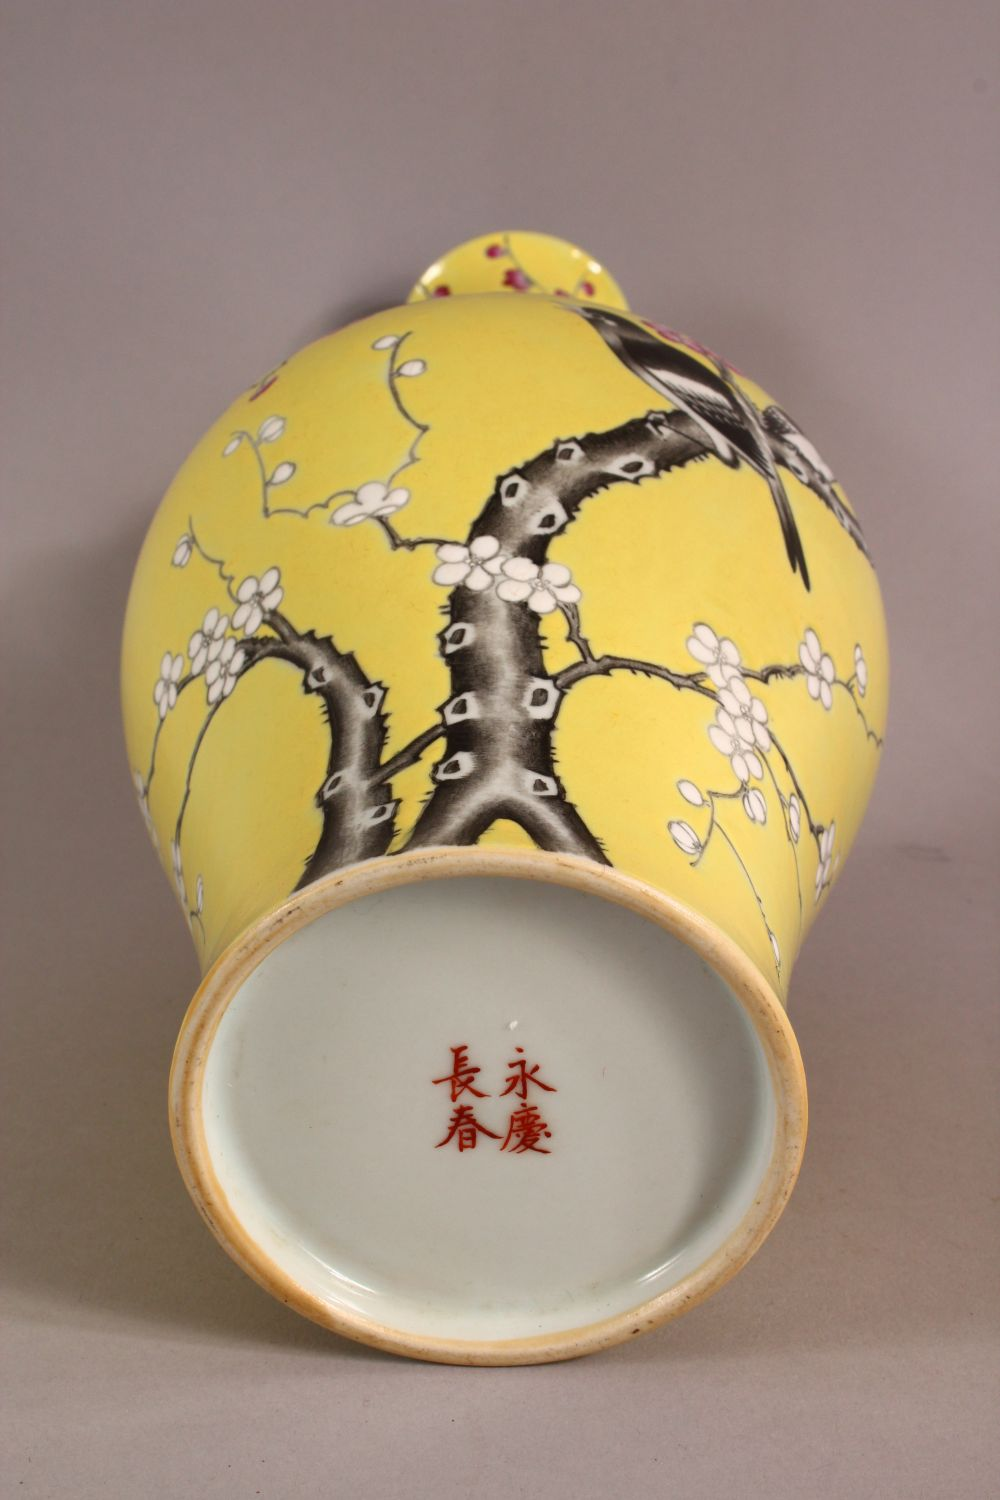 A CHINESE YELLOW GLAZED FAMILLE ROSE PORCELAIN VASE, decorated with birds in trees, with a mark - Image 8 of 9